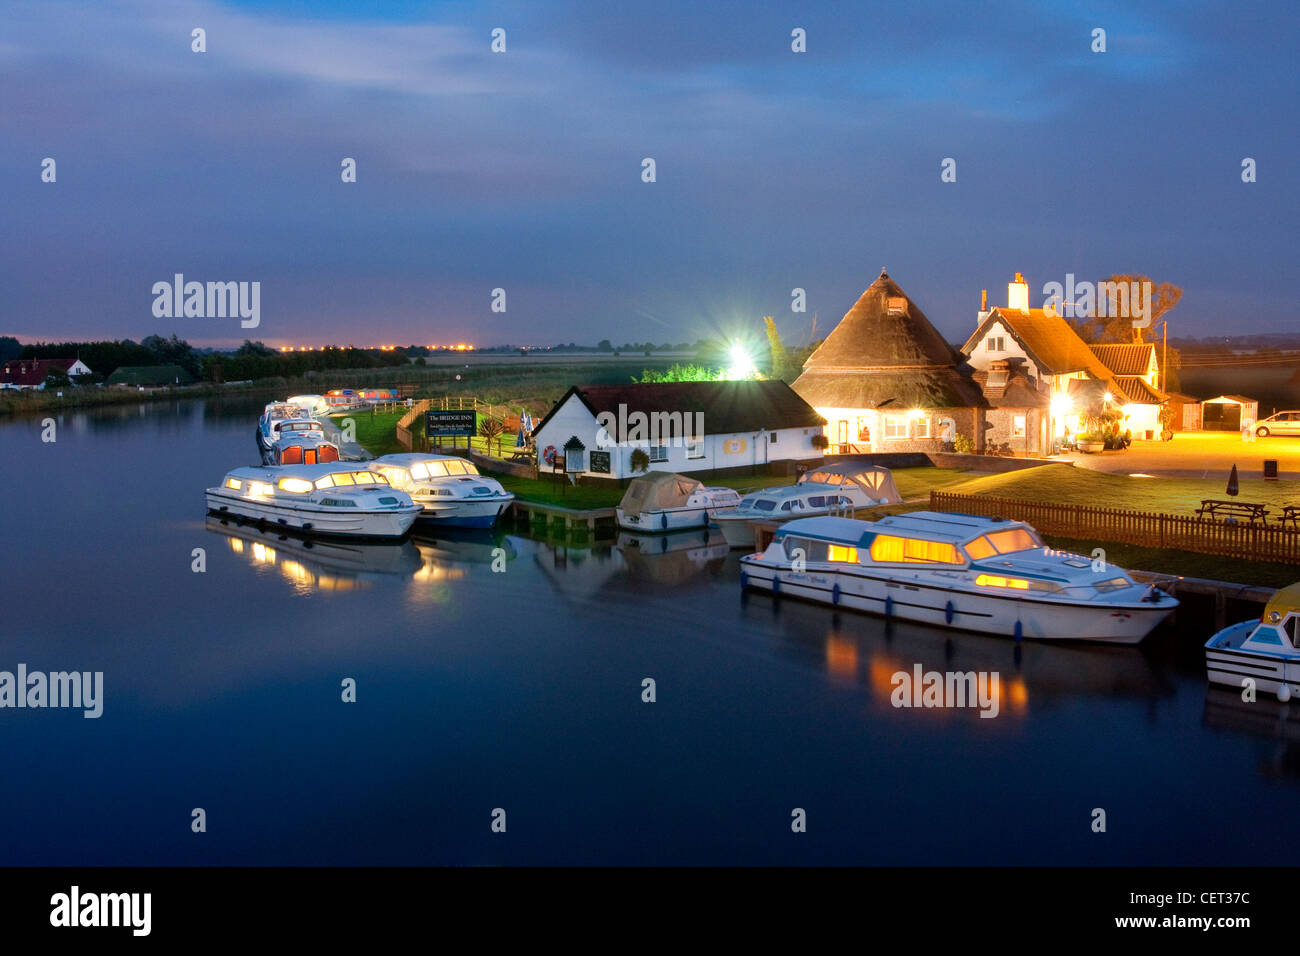 Boats moored outside The Bridge Inn on the Norfolk Broads. - Stock Image